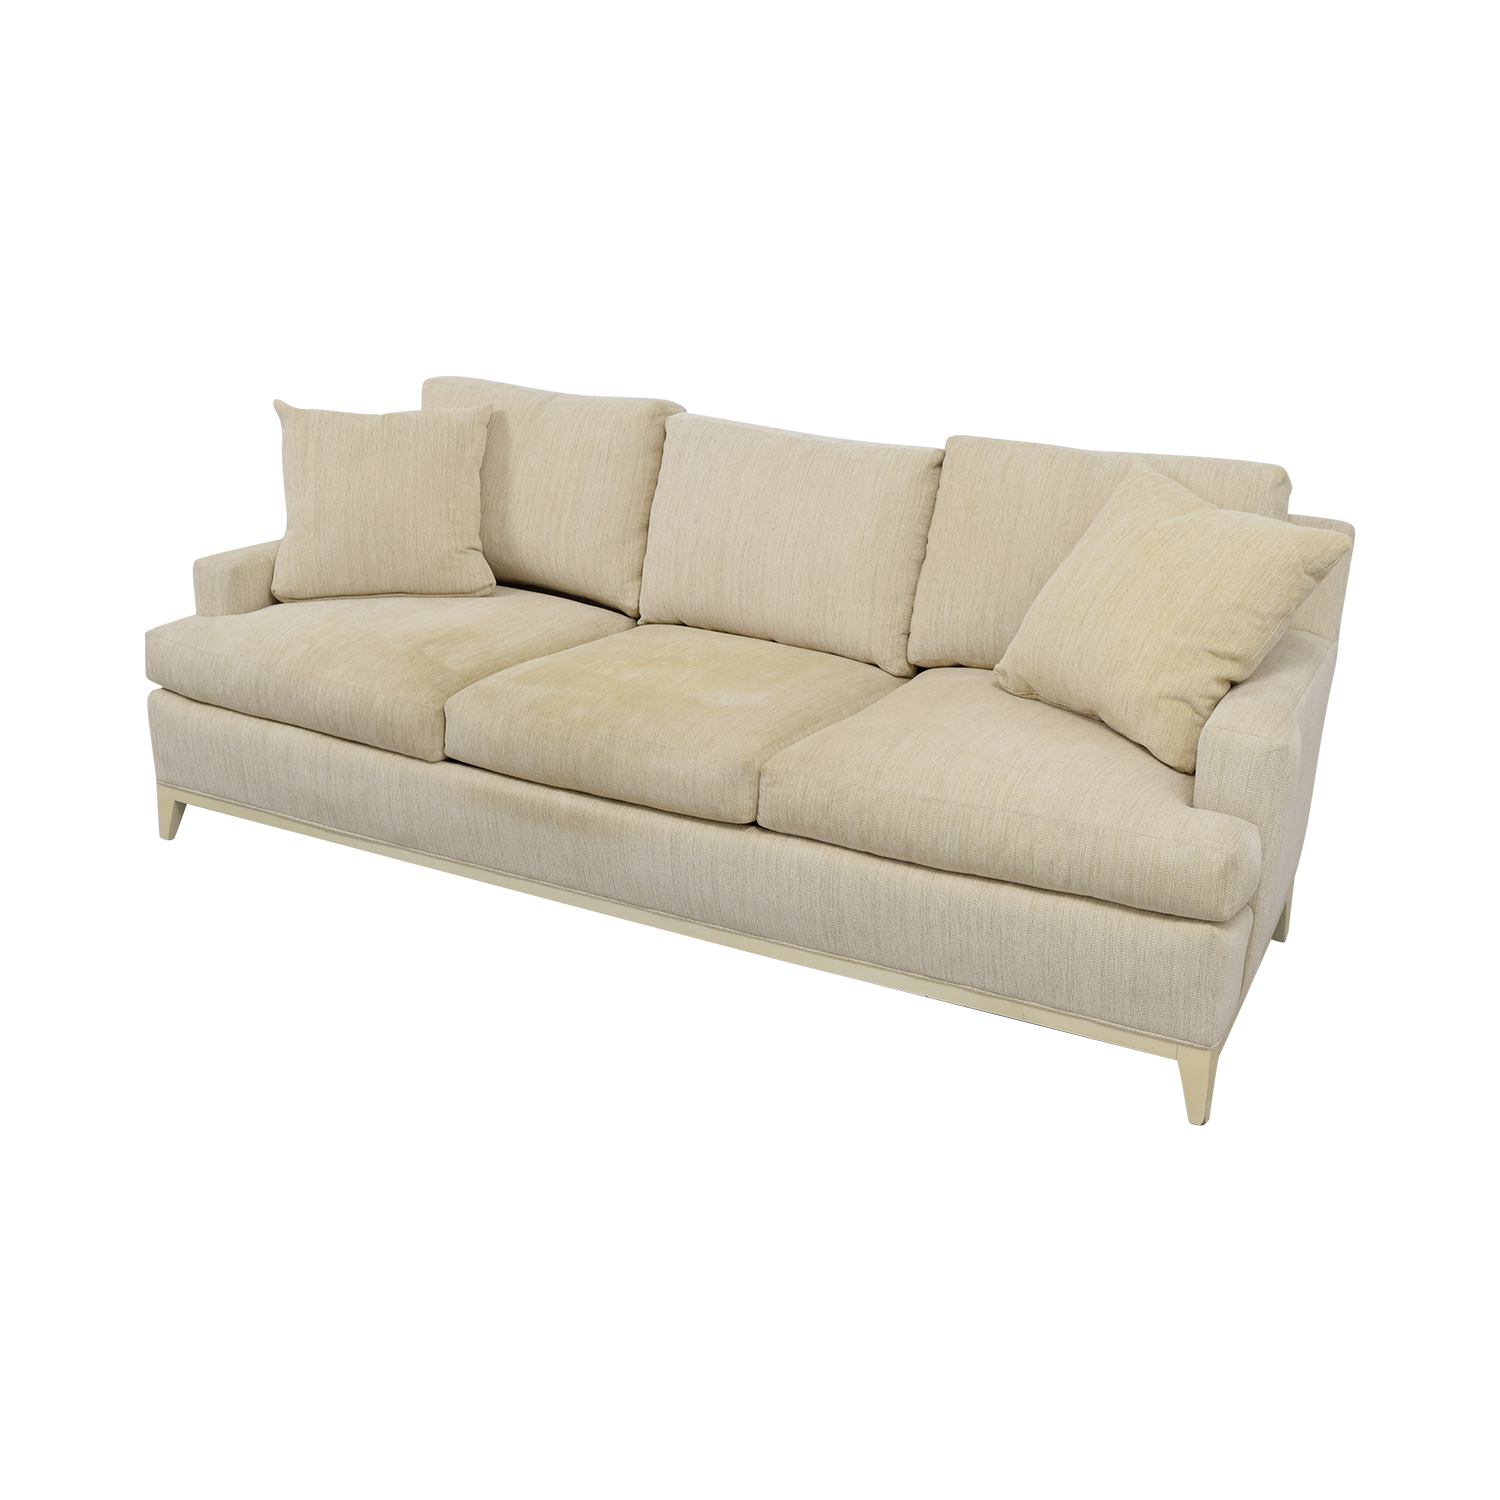 24% OFF Hickory Chair Hickory Chair 9th Street Sofa Sofas